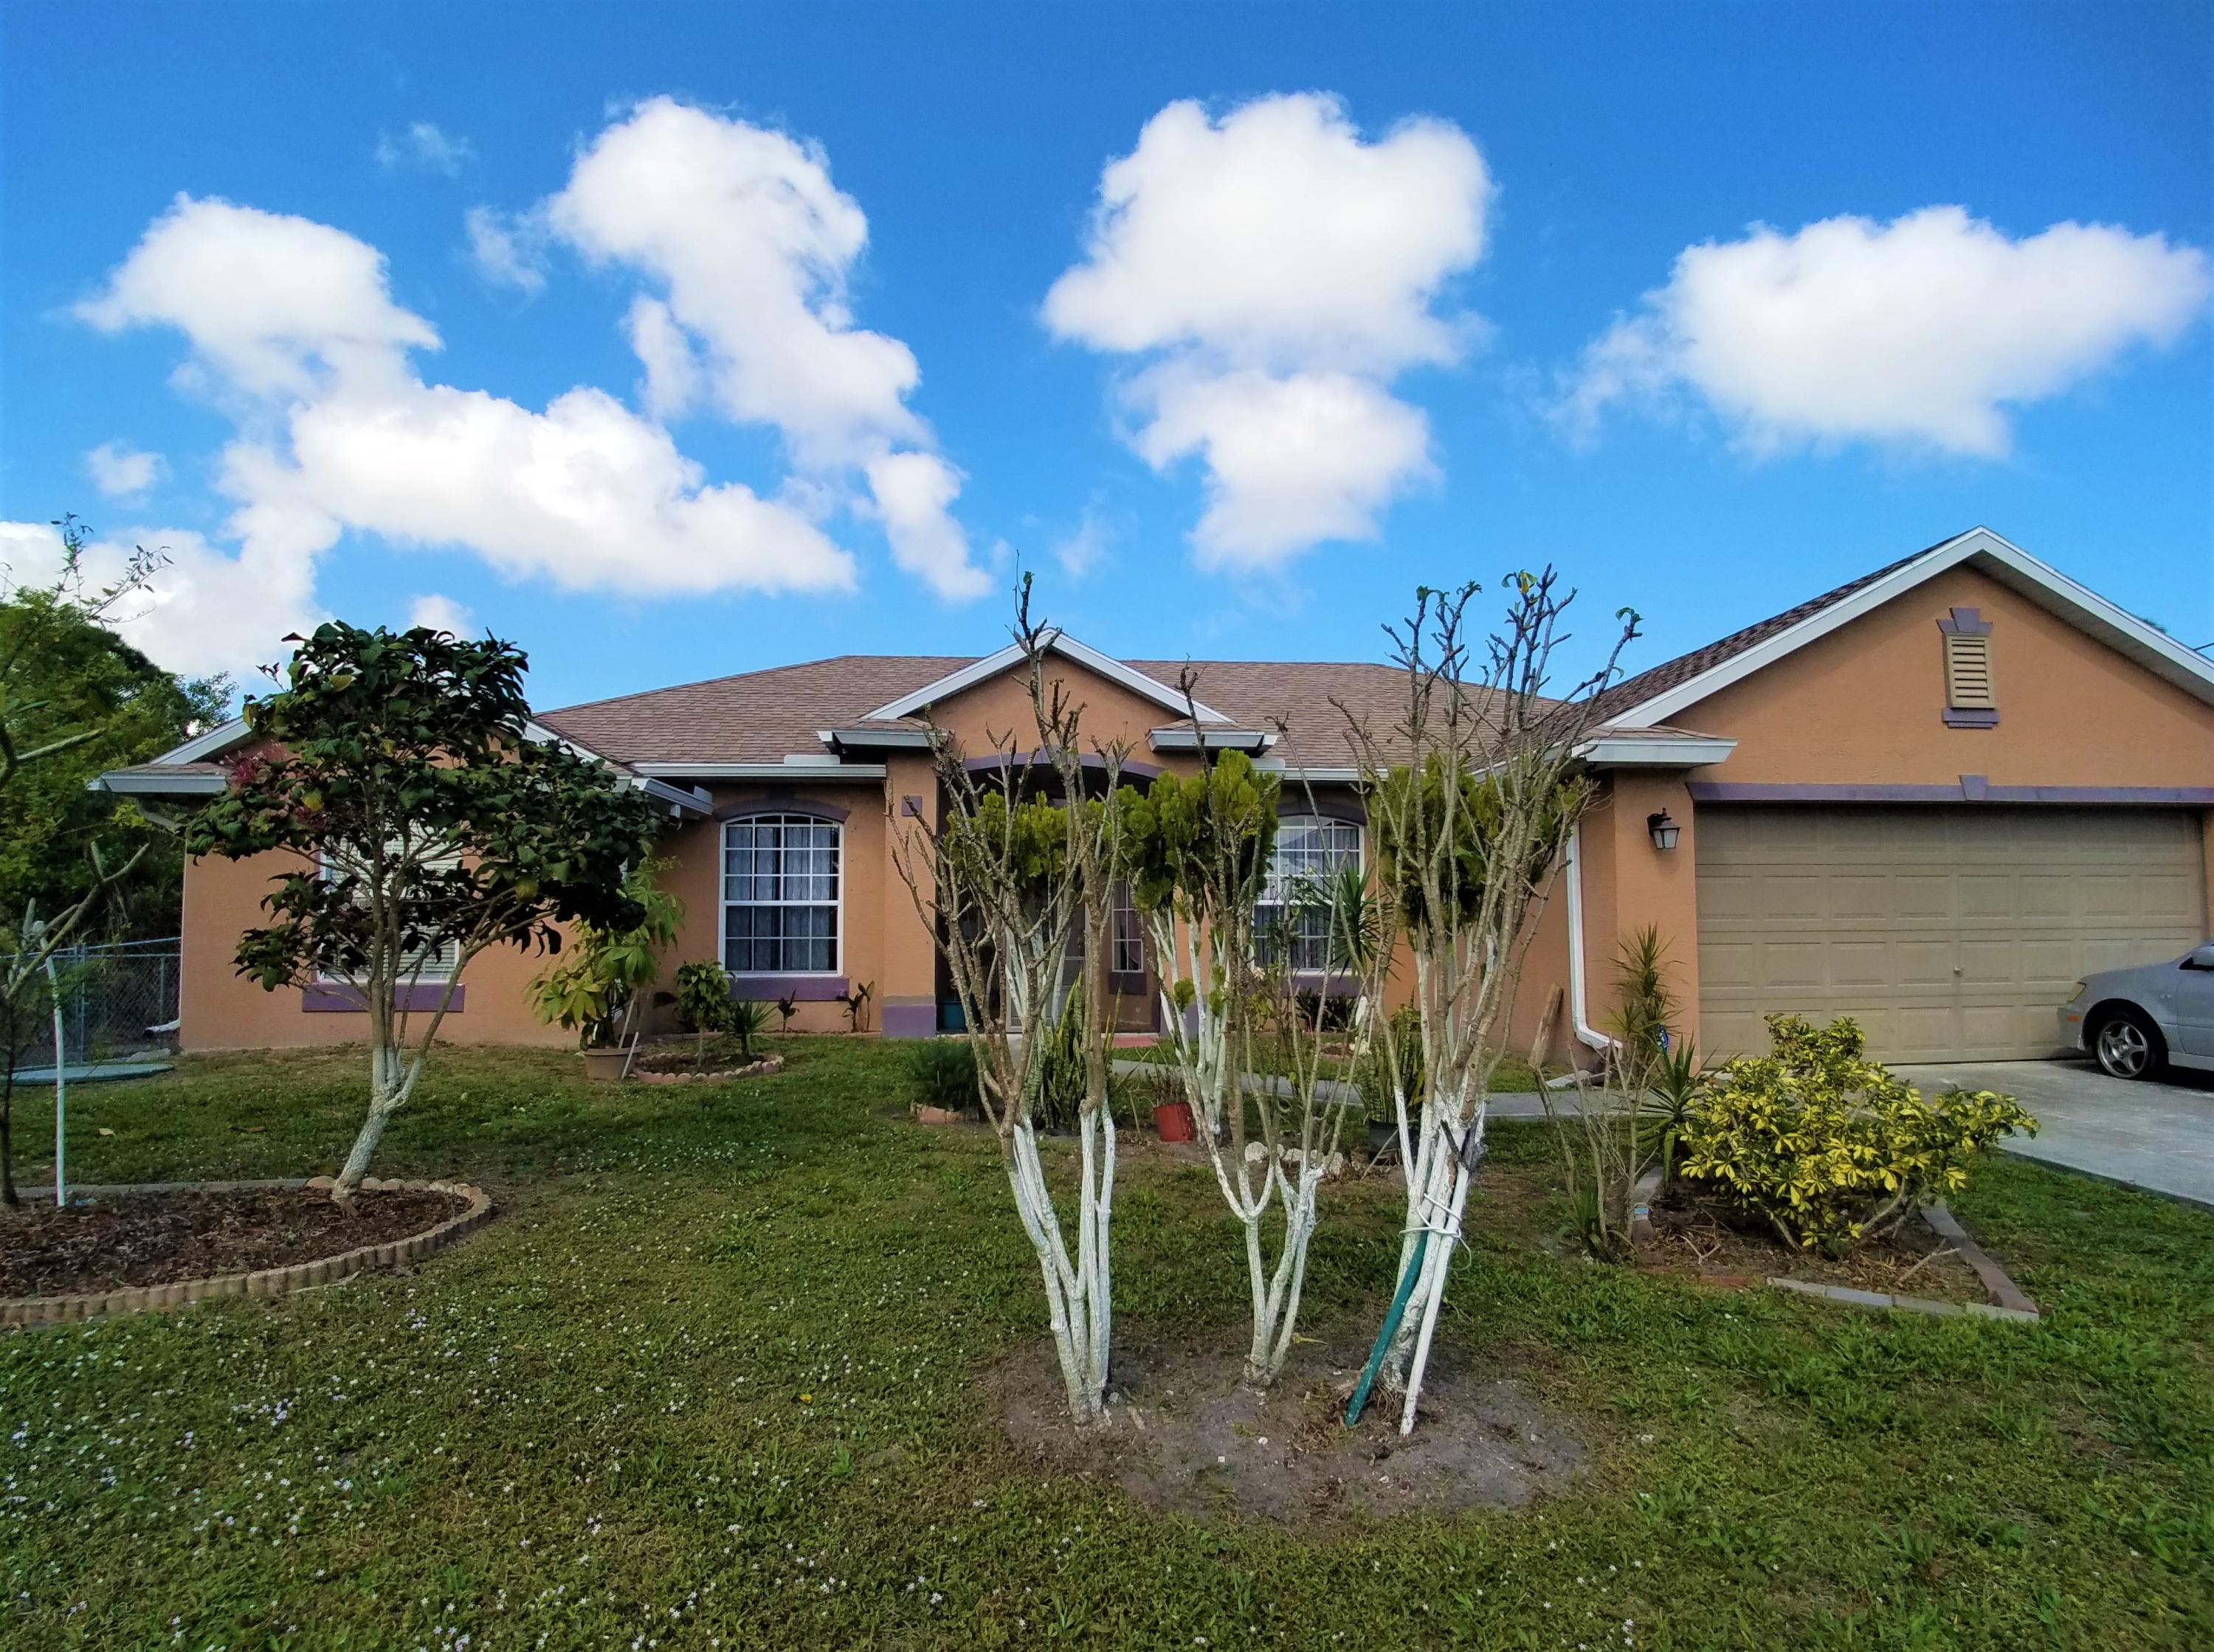 2565 Mariposa Avenue, Port Saint Lucie, Florida 34952, 3 Bedrooms Bedrooms, ,2 BathroomsBathrooms,Single Family,For Sale,Mariposa,RX-10506498